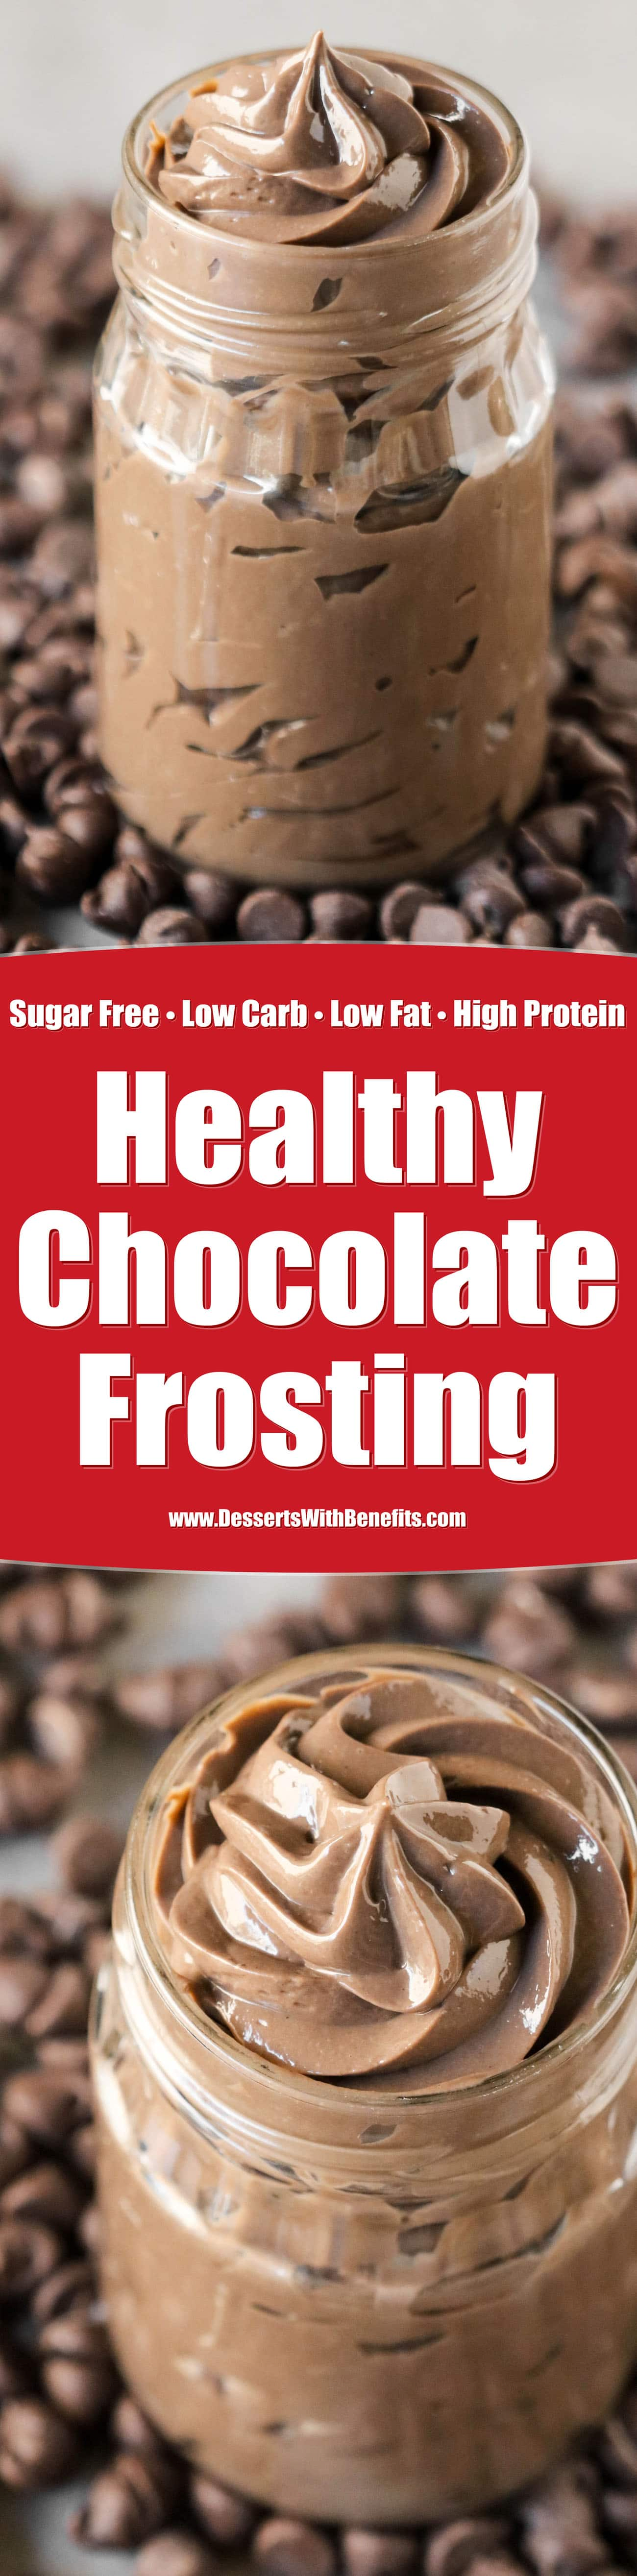 This healthy Chocolate Protein Frosting is perfect for EVERYTHING. It's sweet, creamy, and uber chocolatey, but without the white sugar, butter, hydrogenated shortening (aka trans fats), and artificial flavorings. Just as good as the original, but made good for you! It's hard to believe this is sugar free, low carb, low fat, high protein, and gluten free!